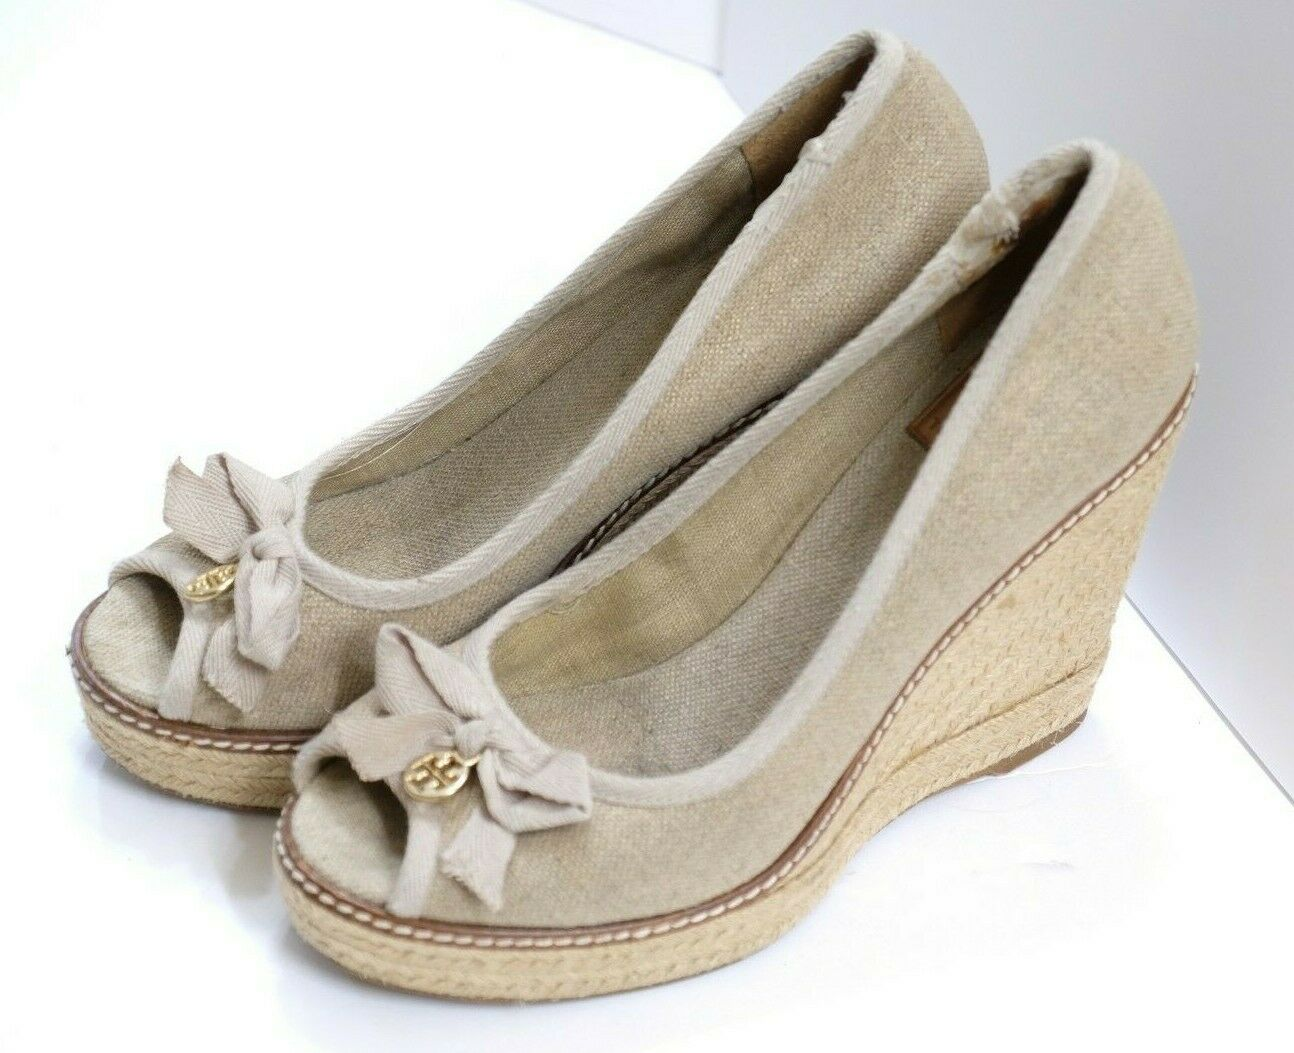 VGUC Tory Burch Women's Size 9B Beige Fabric High Heel Open Toe Espadrilles